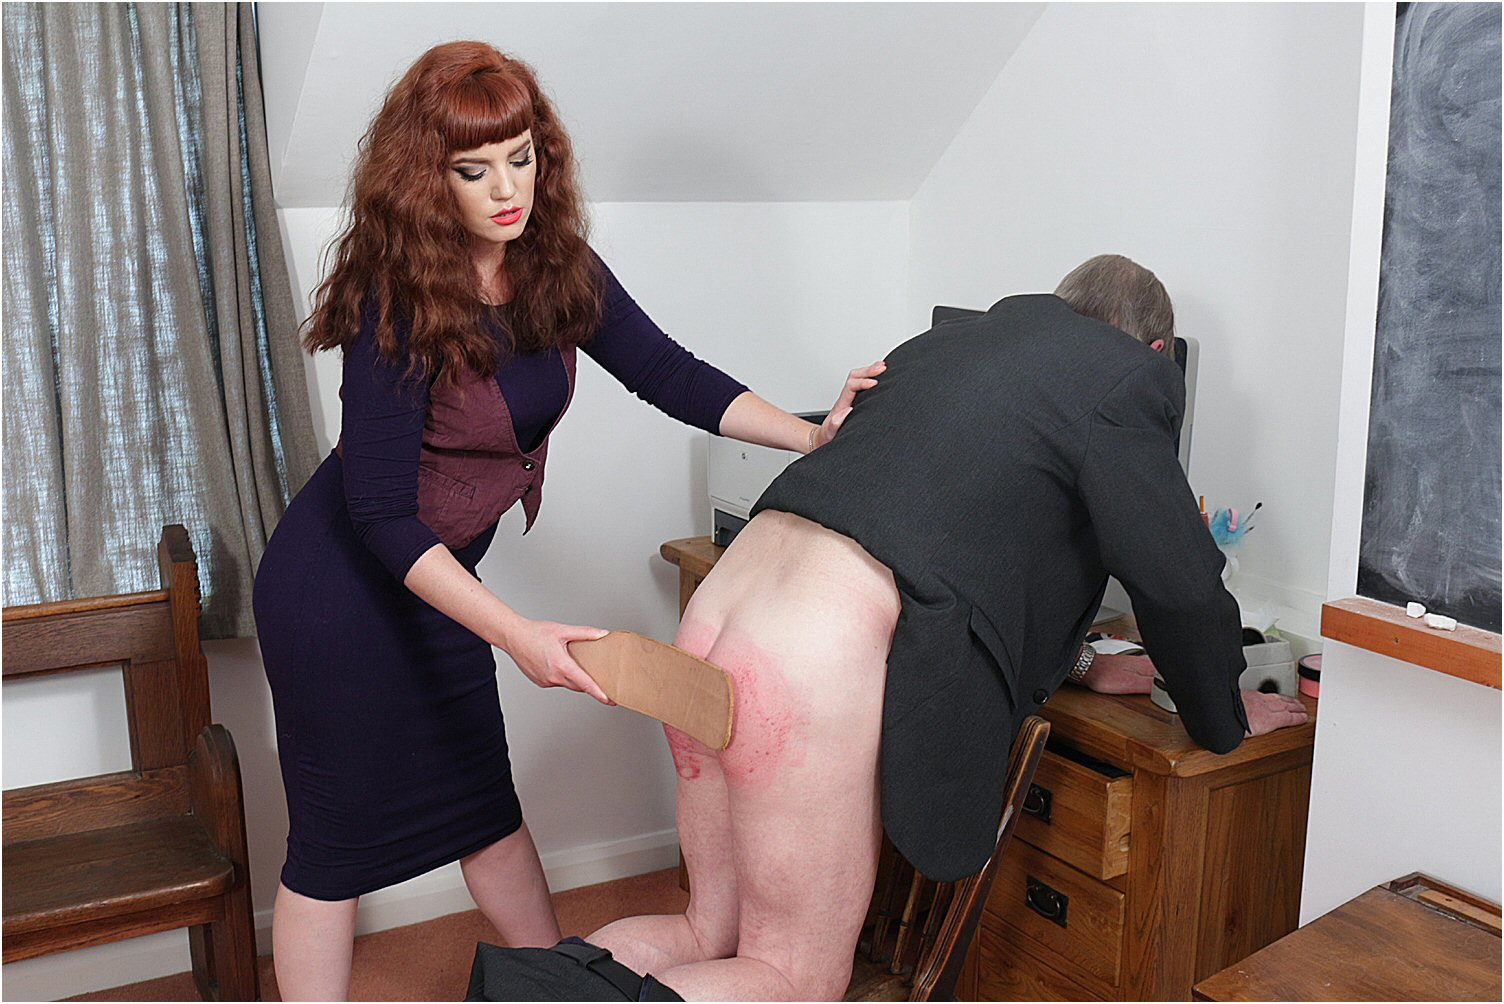 www.vixenladies.com women spanking men